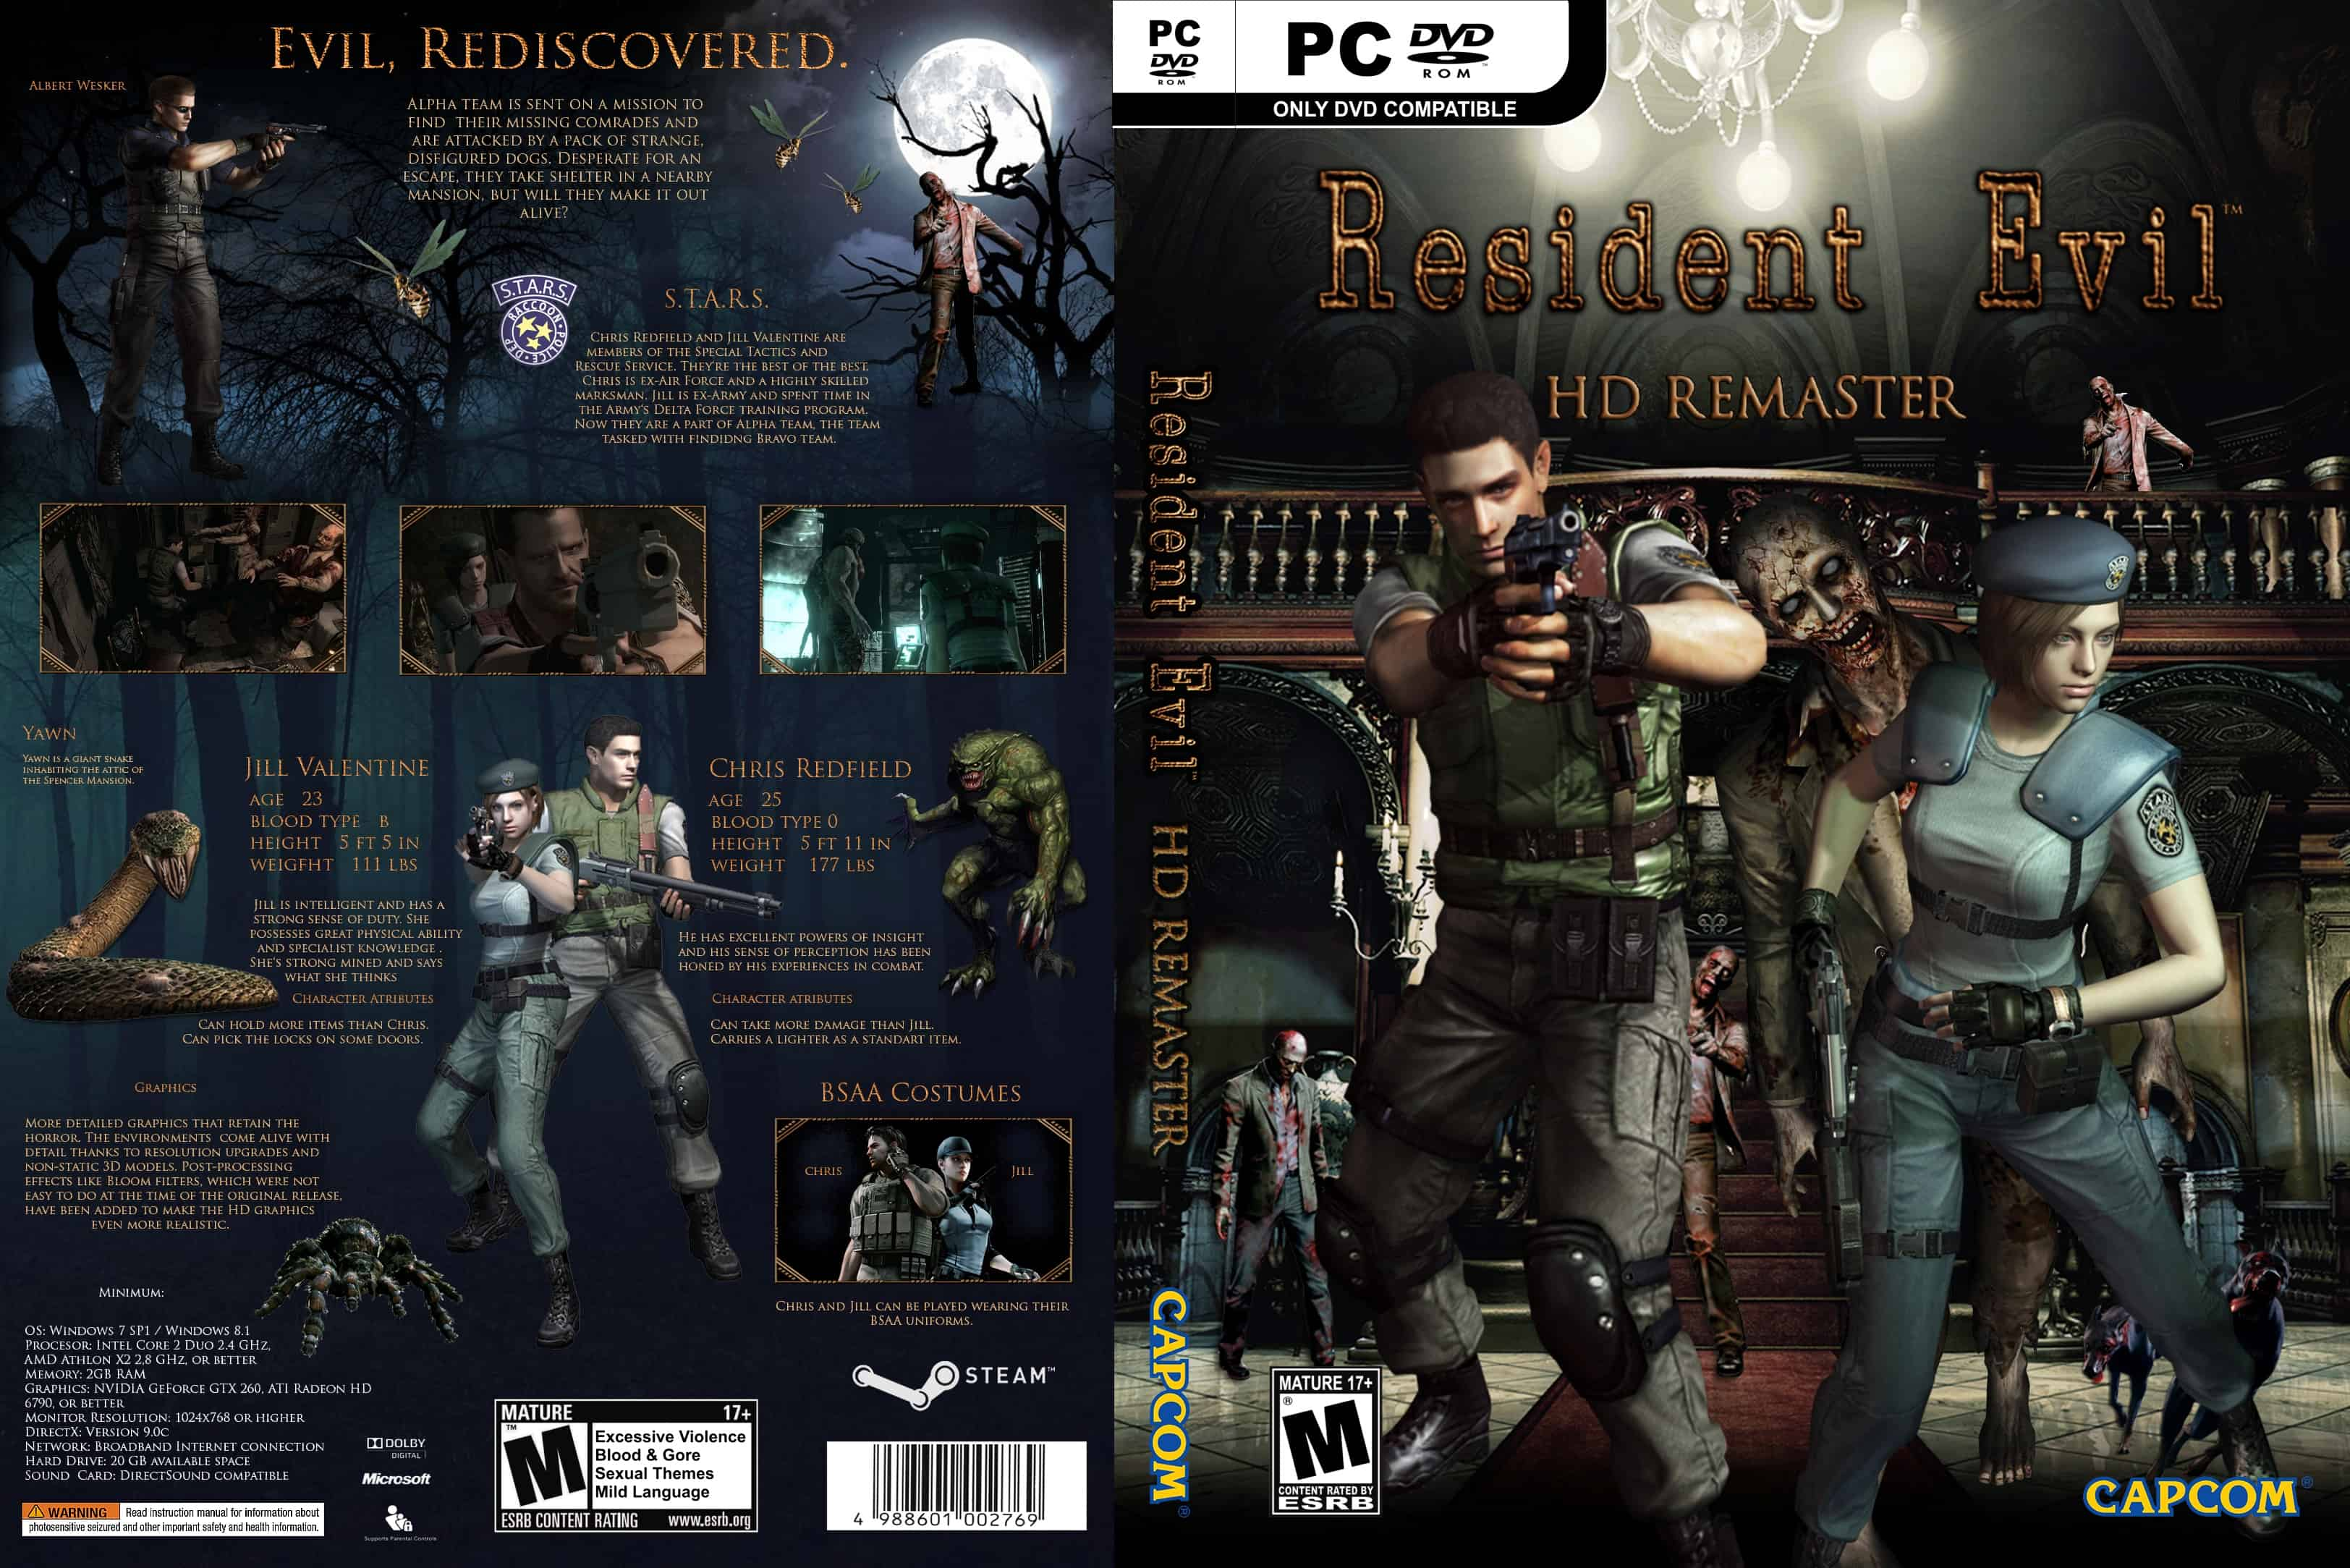 PC Resident Evil: HD Remaster SaveGame 100% - Save File Download